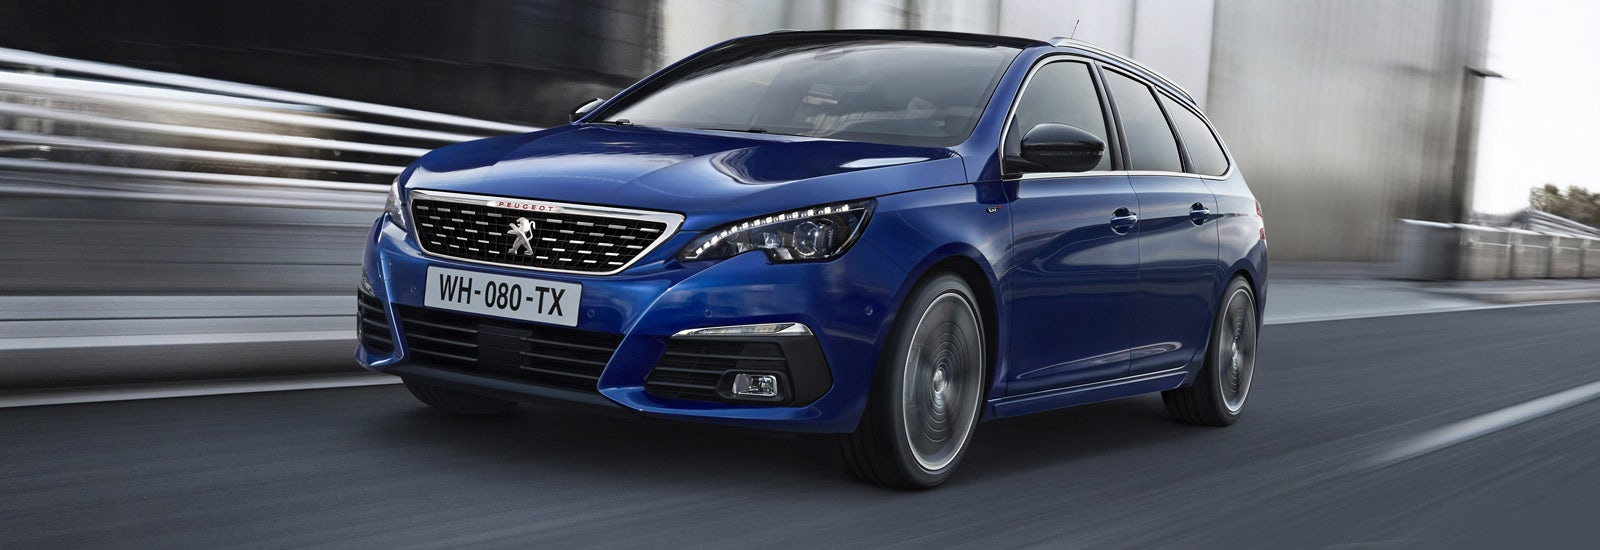 2017 peugeot 308 facelift price specs and release date. Black Bedroom Furniture Sets. Home Design Ideas